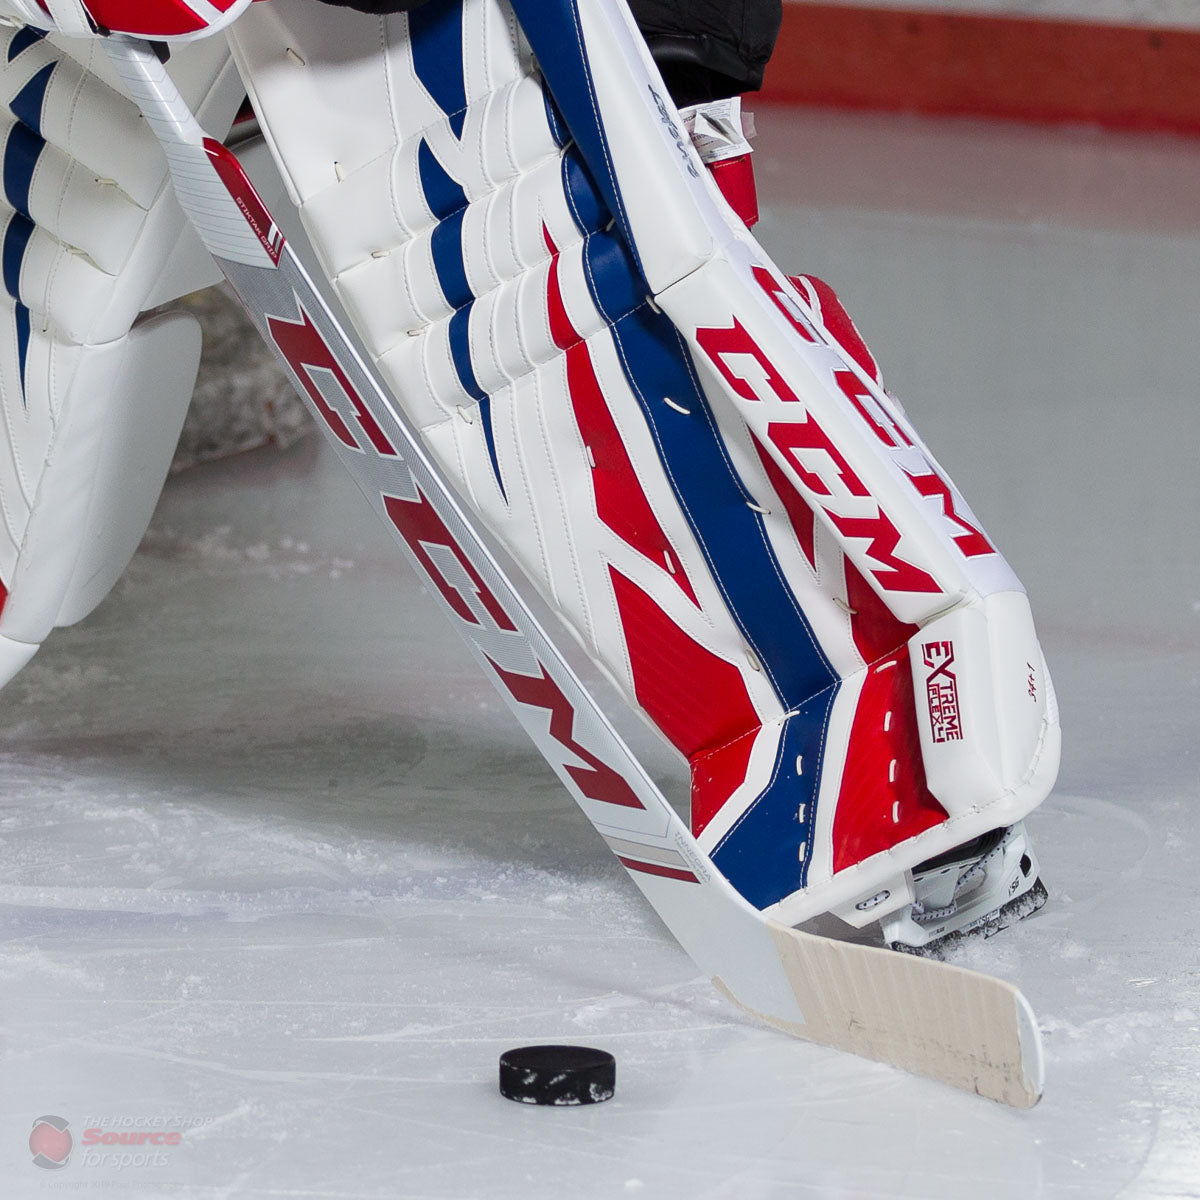 CCM E-Flex 4 Goalie Stick Review